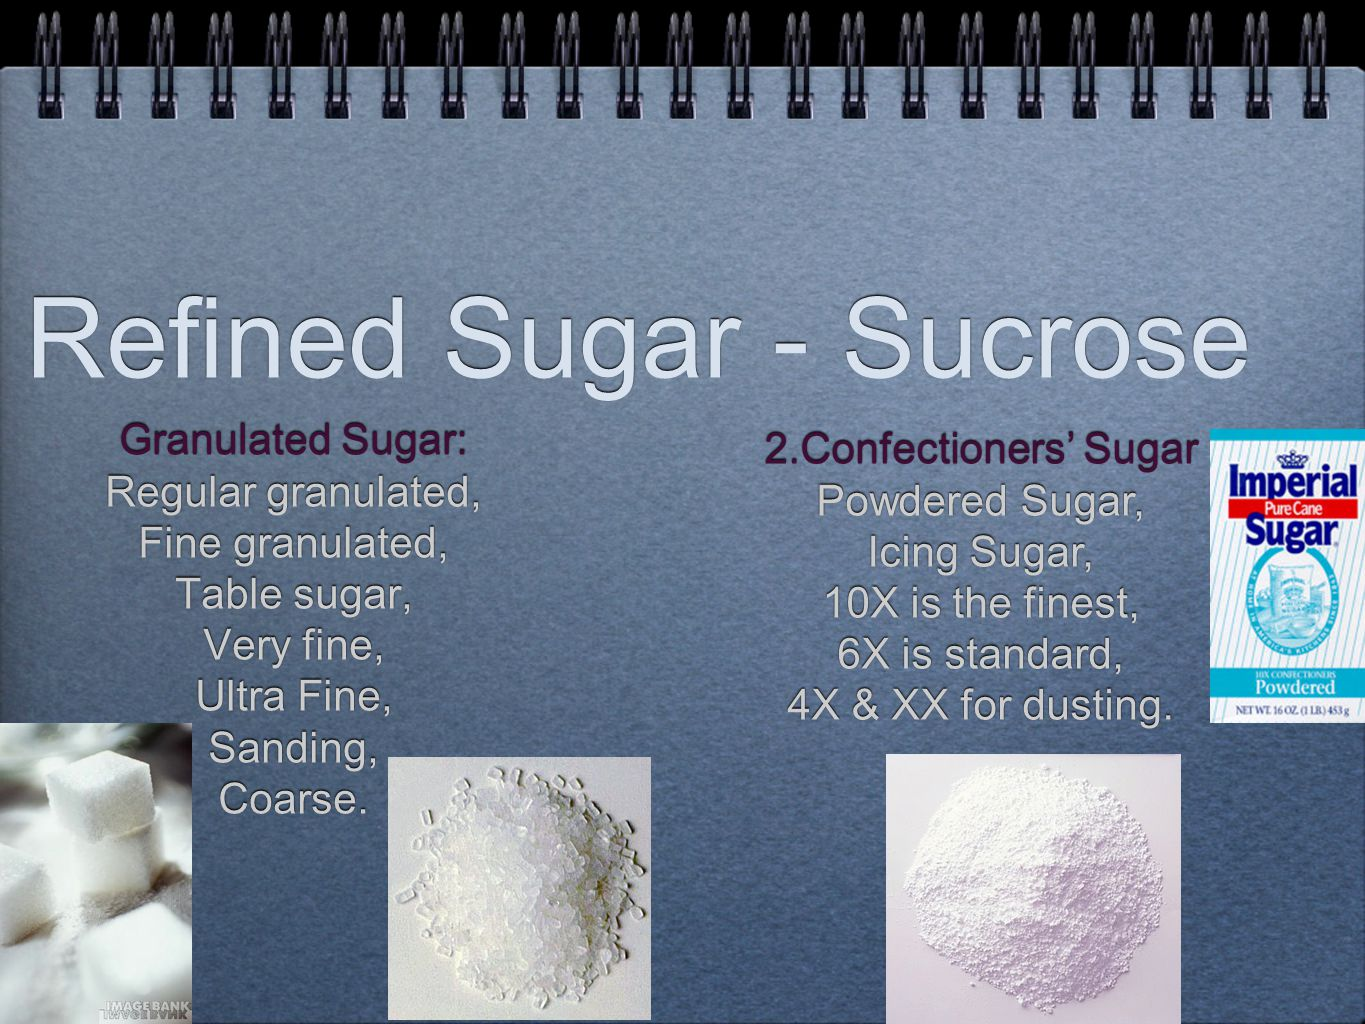 Refined Sugar - Sucrose Granulated Sugar: Regular granulated, Fine granulated, Table sugar, Very fine, Ultra Fine, Sanding, Coarse.